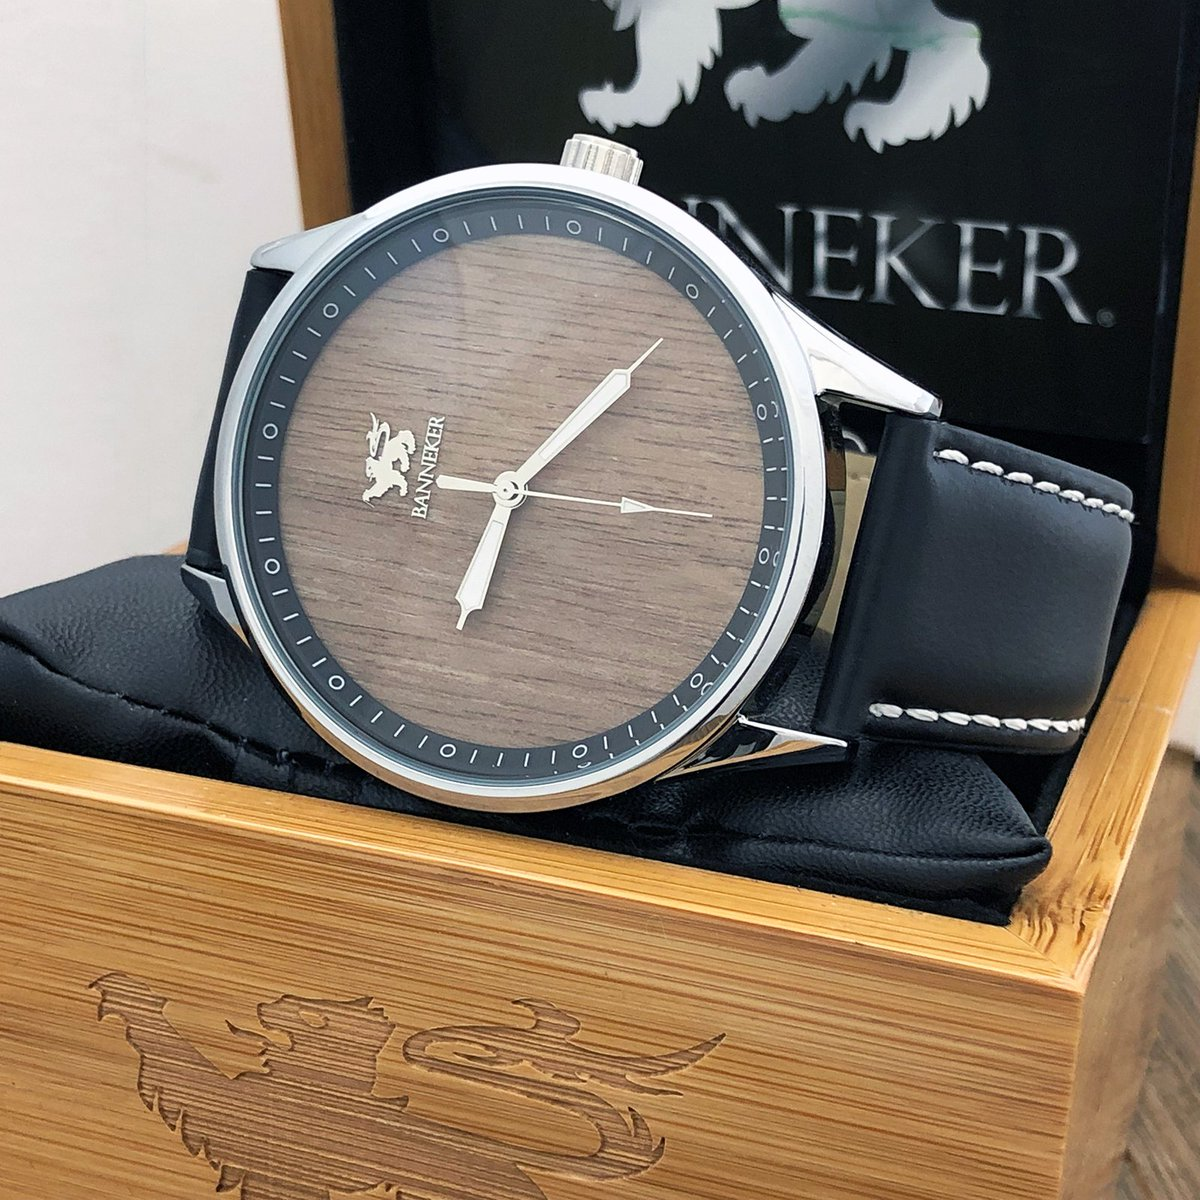 9afd27c1f ... in stock and shipping now including the Black Eagle Baller and the  Camelot series of watches. #watchsale #blackeagle #bannekerwatches #camelot  #banneker ...